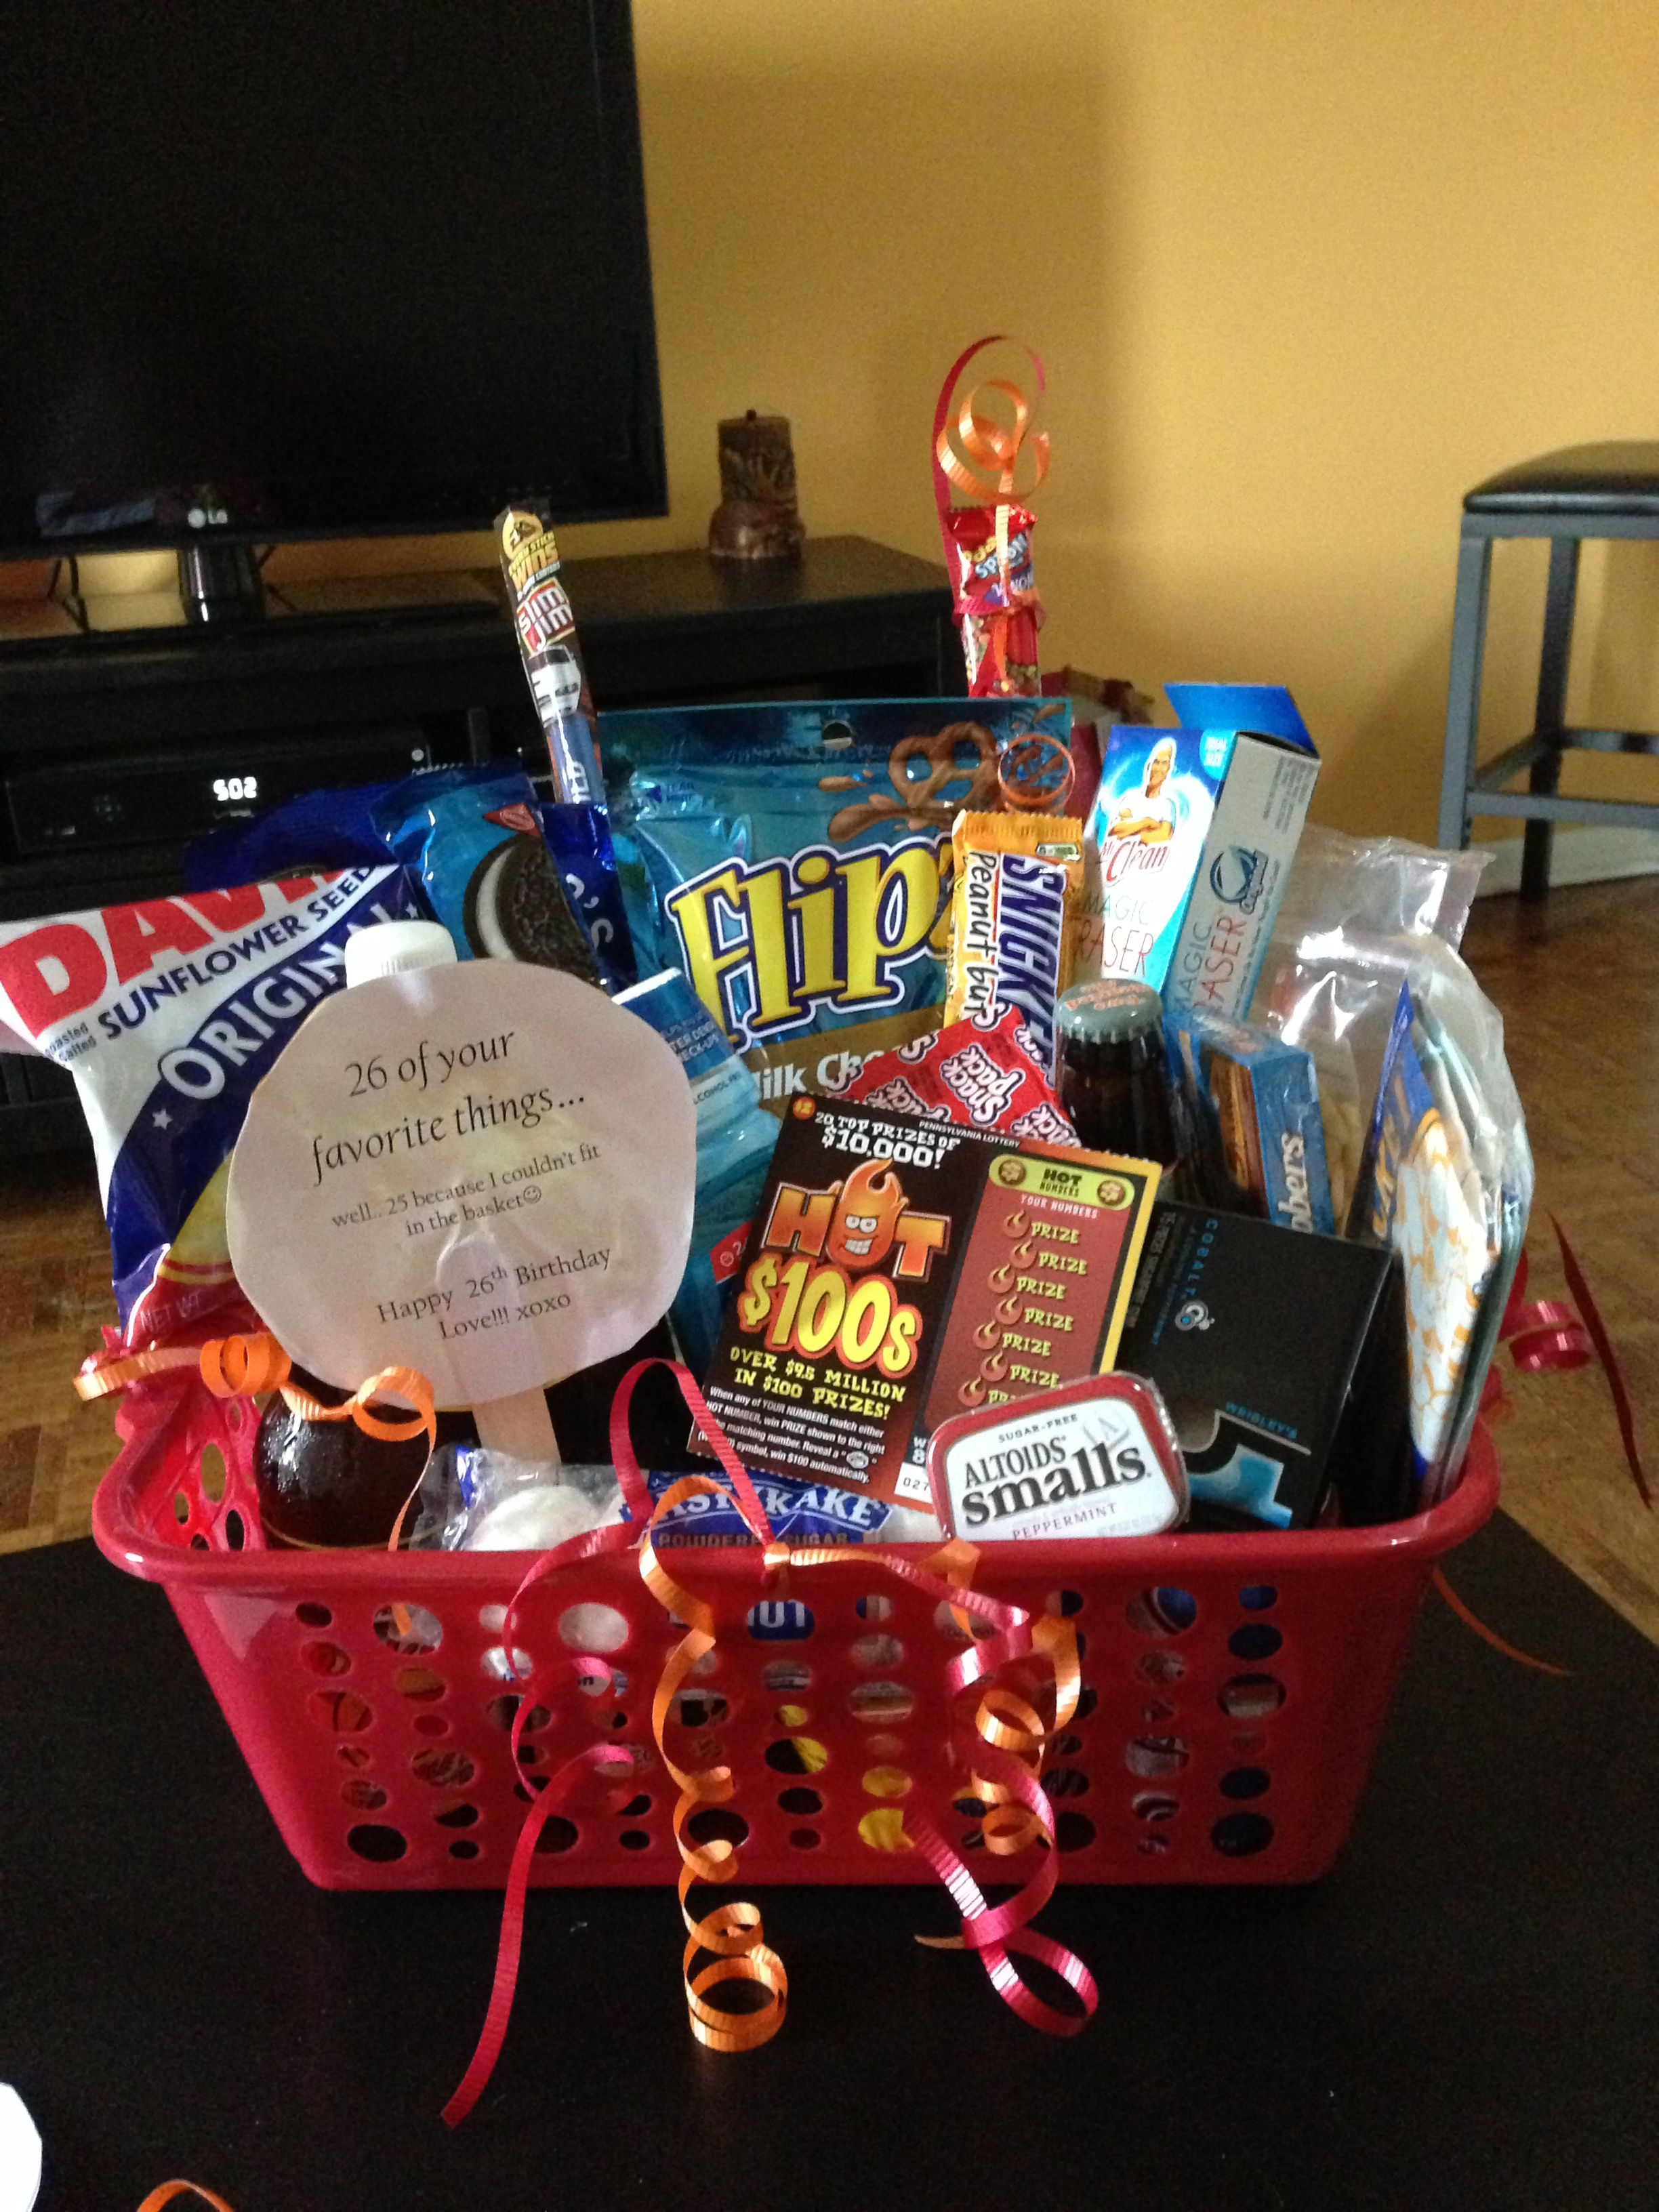 Boyfriend birthday basket 26 of his favorite things for for Gift to give your boyfriend for his birthday